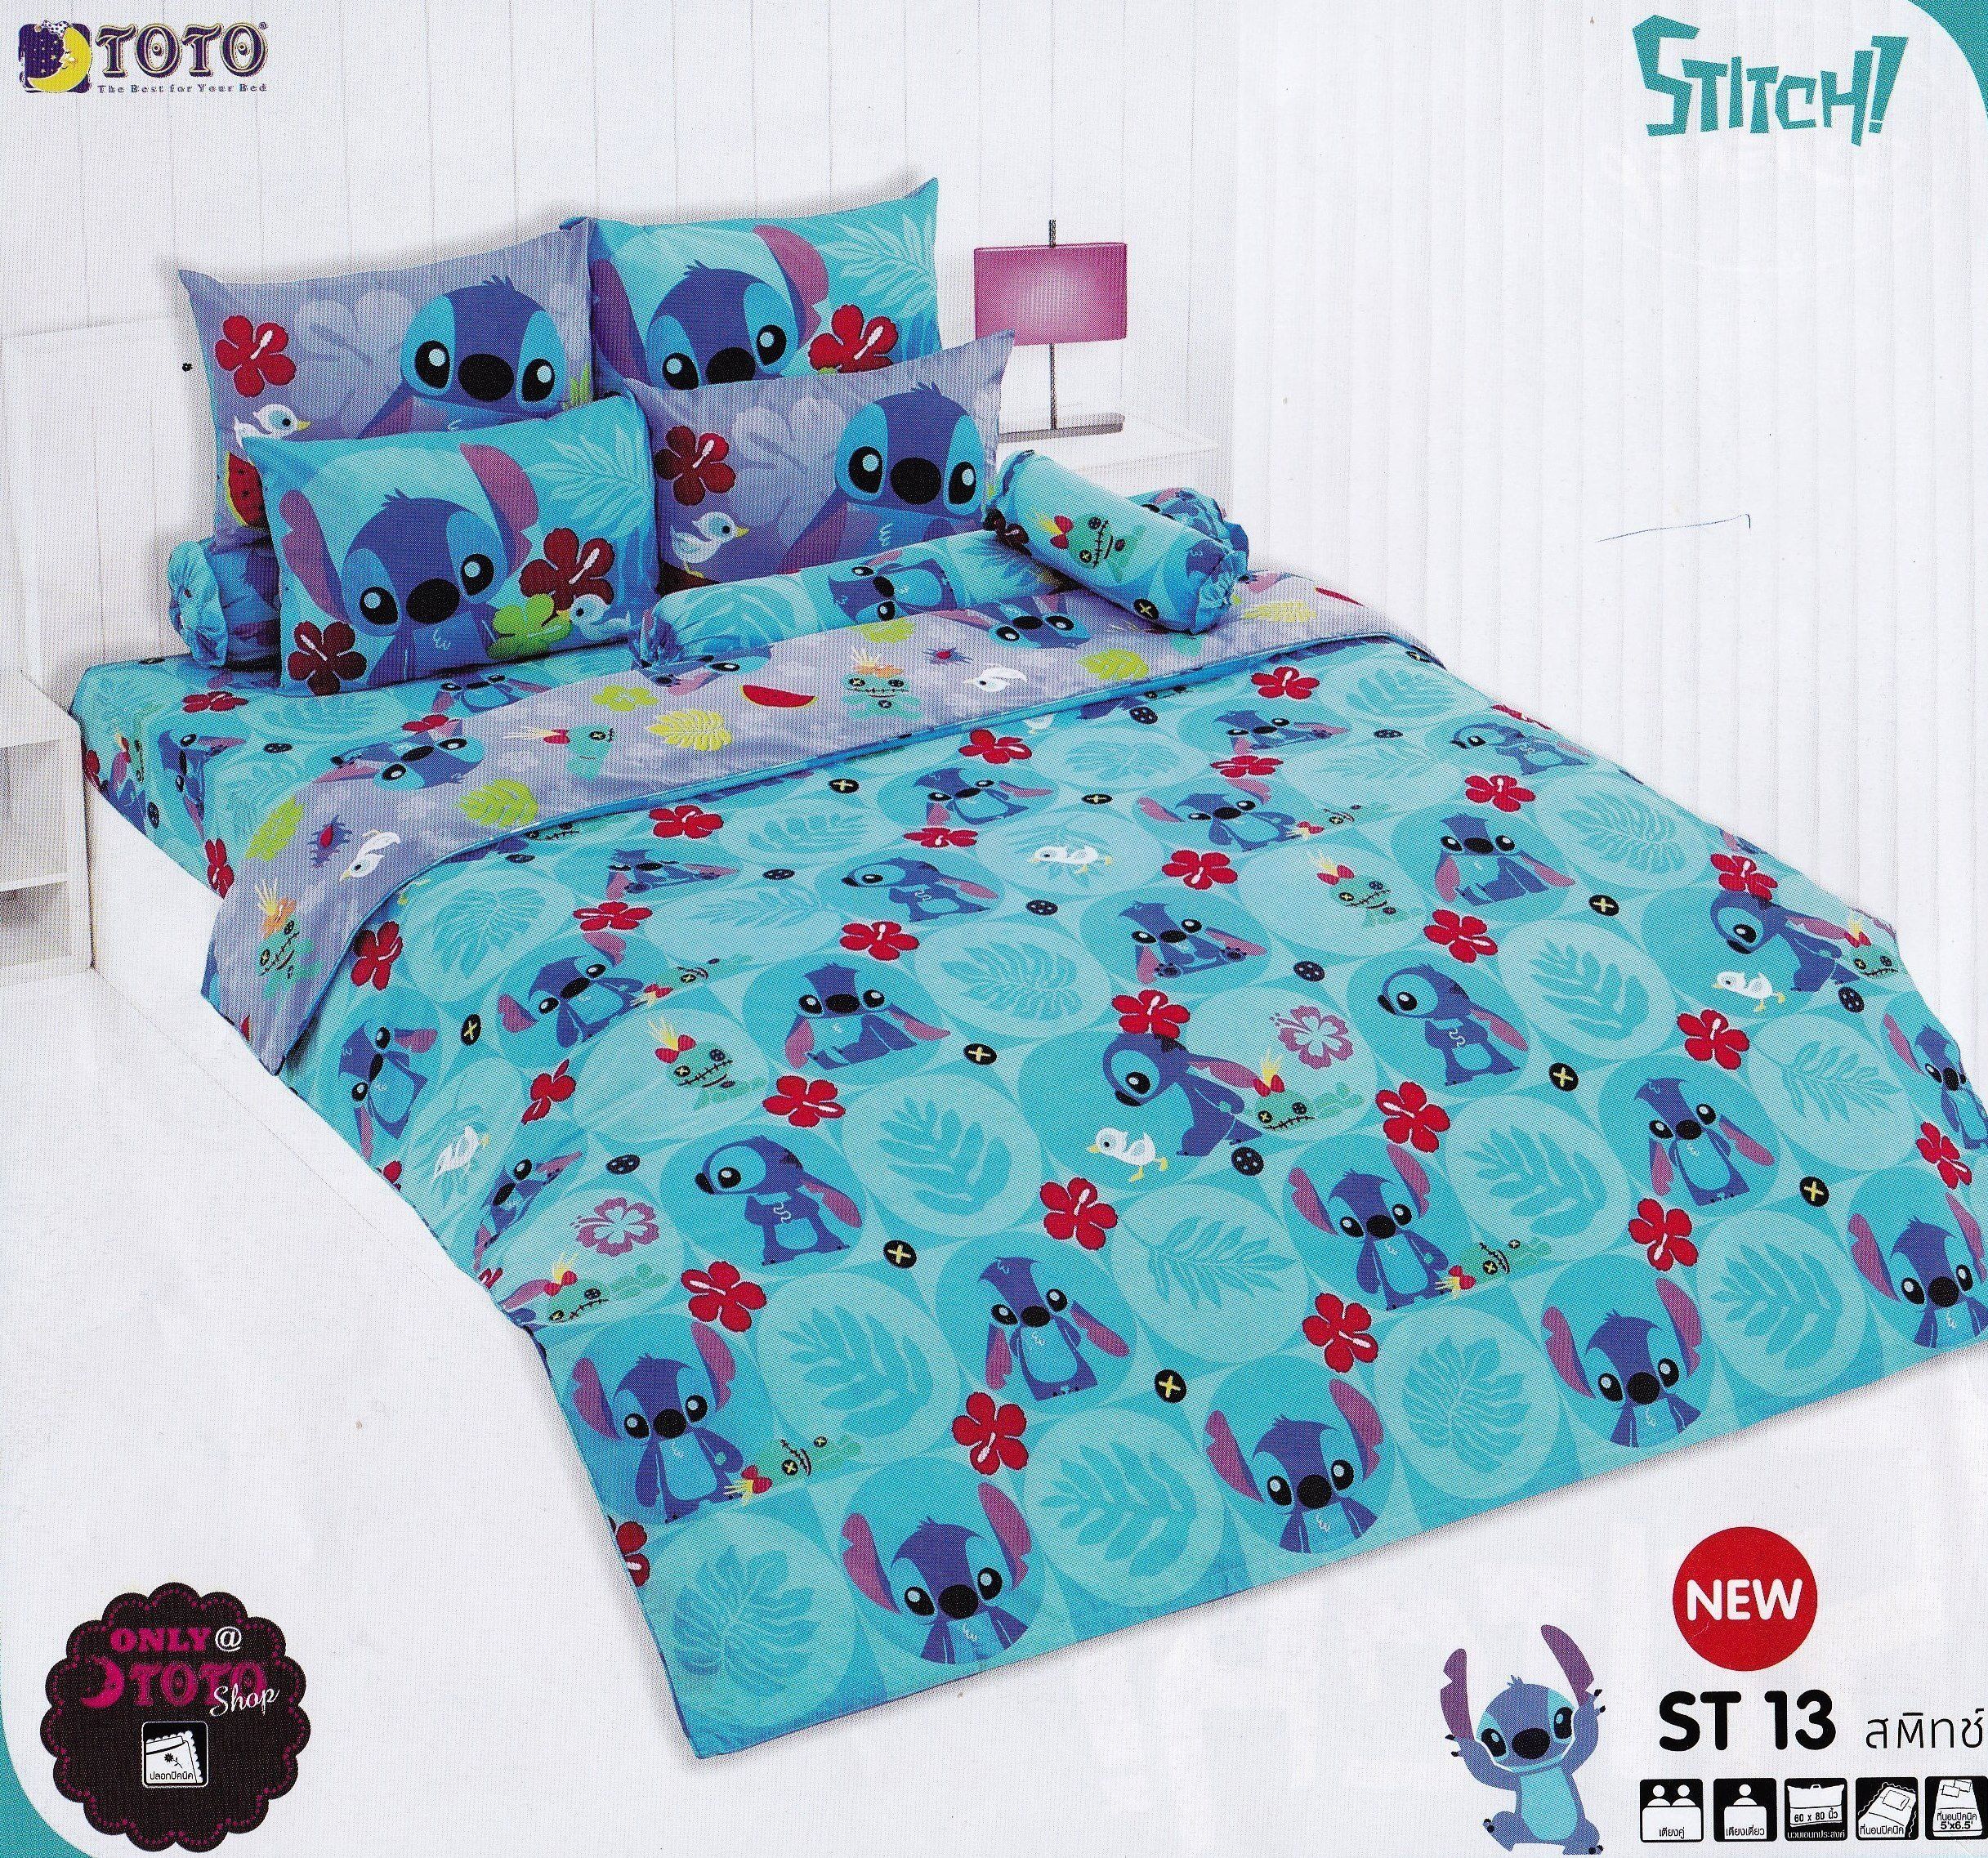 Lilo And Stitch Bed Fitted Sheet Set (Twin, ST13); 3 Pieces Set (1 Bed  Fitted Sheet, 1 Standard Pillow Case And 1 Standard Bolster Case)